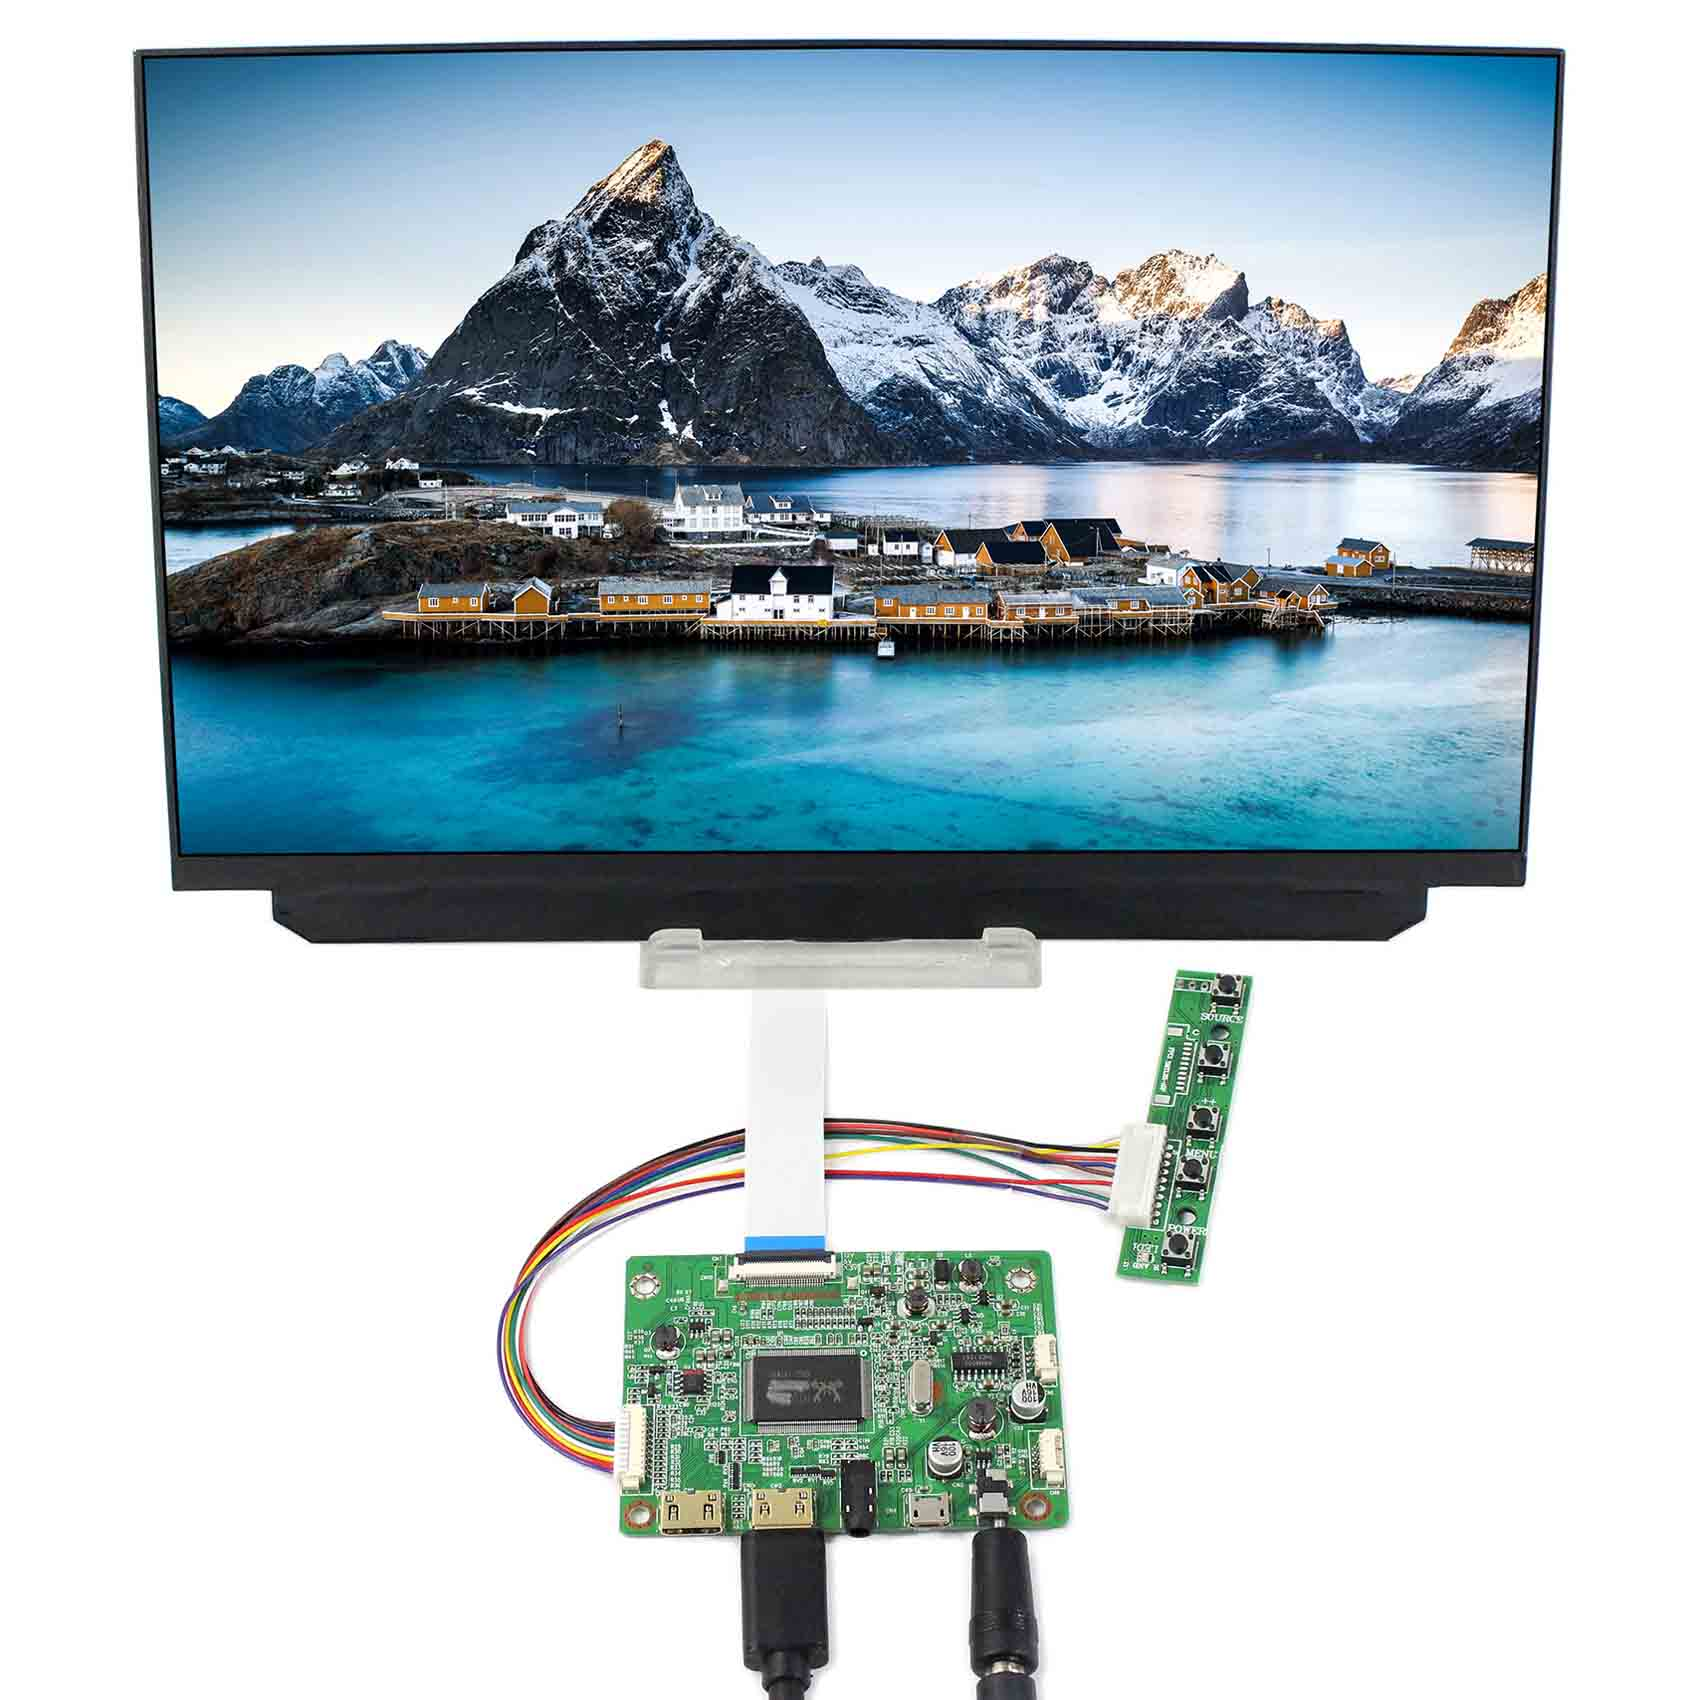 HDMI VGA LCD Controller Board VS-RTD2556HM-V1 With 12.5inch 1920x1080 B125HAN02.2 EDP LCD Screen vga hdmi lcd edp controller board led diy kit for lp116wh6 spa1 lp116wh6 spa2 11 6 inch edp 30 pins 1lane 1366x768 wled ips tft